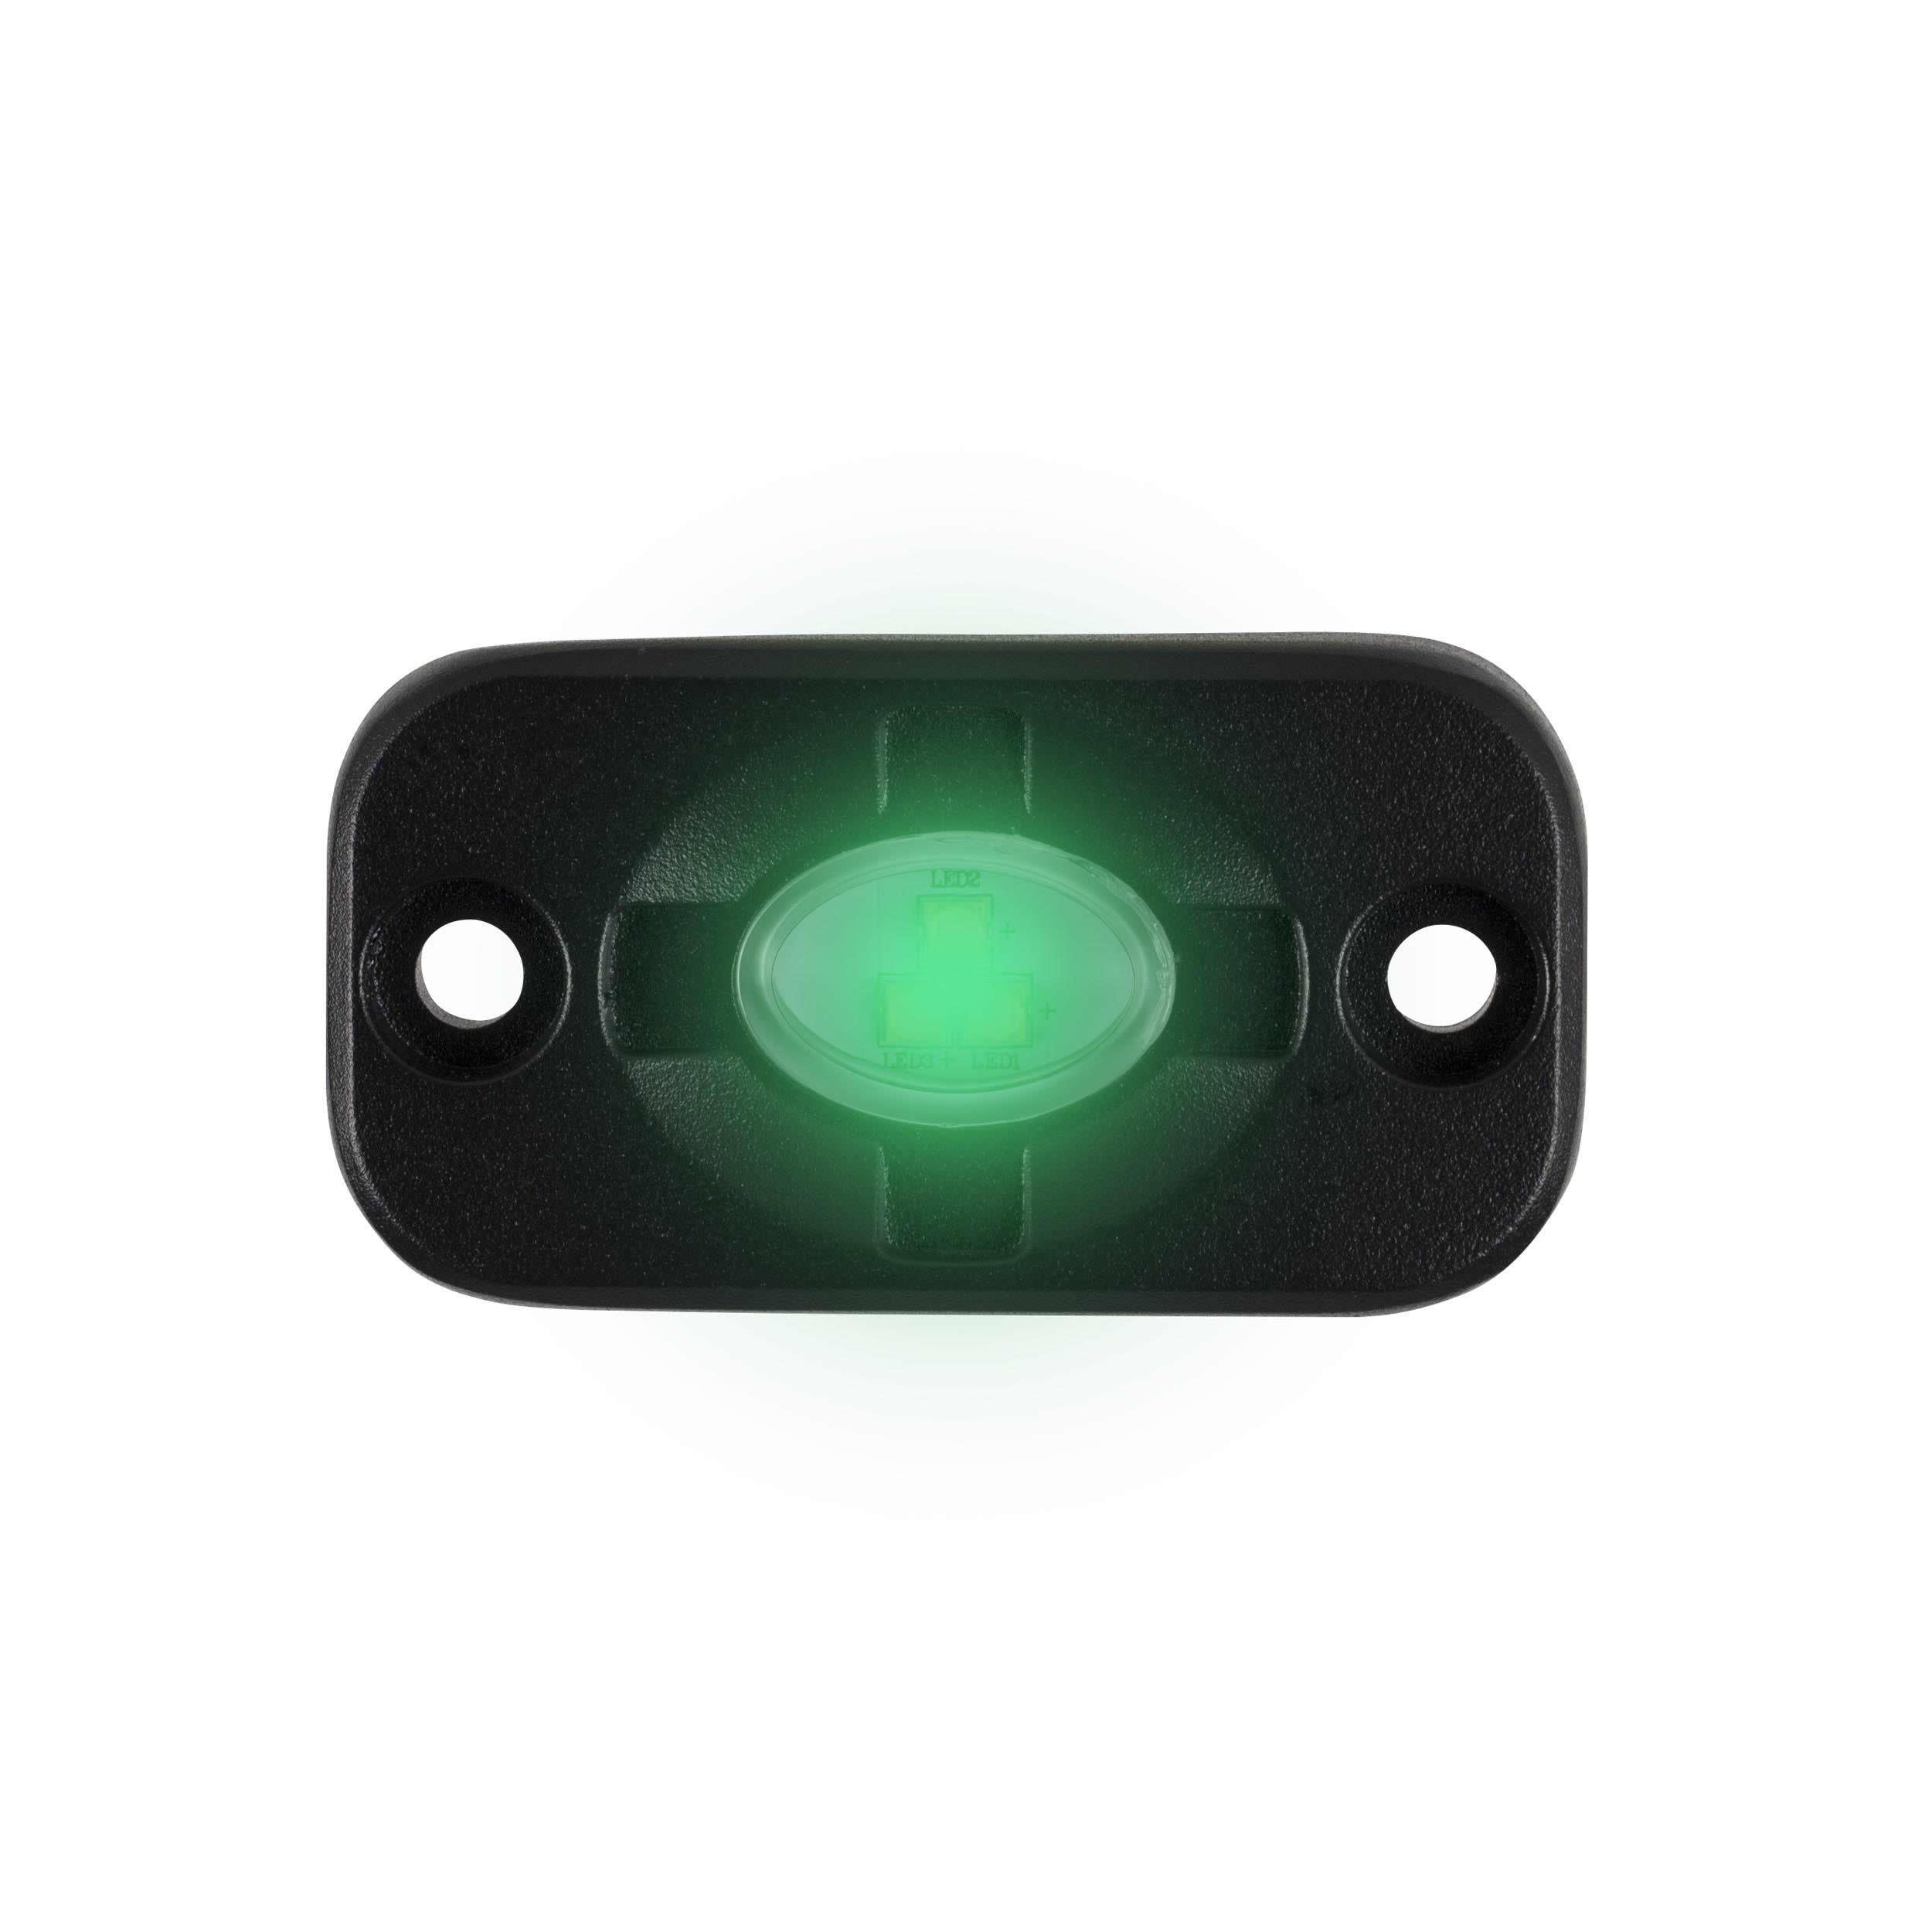 Green Auxiliary Lighting Pod - 1.5x3 Inch, 3 LED